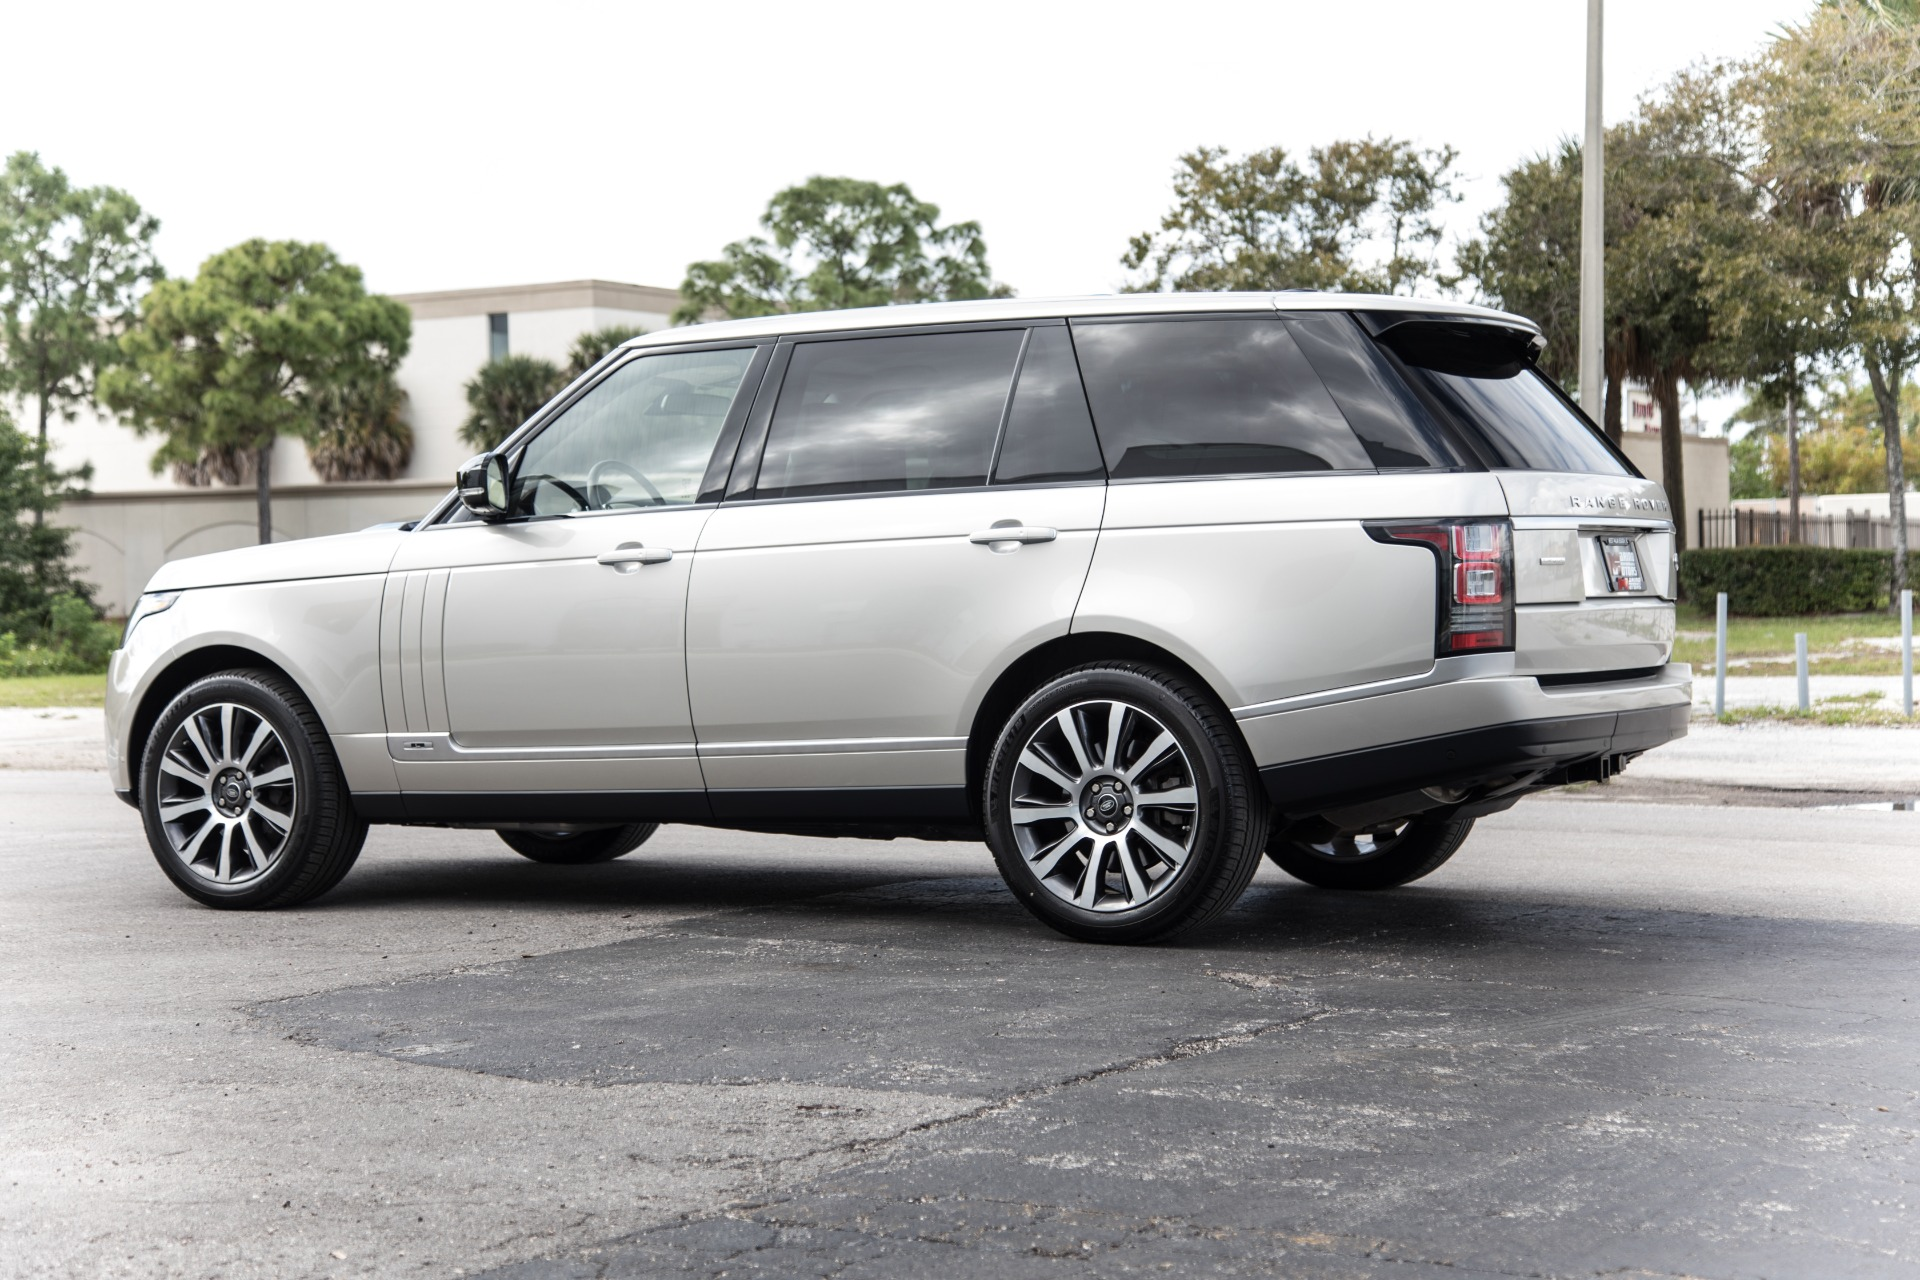 Used-2014-Land-Rover-Range-Rover-Autobiography-LWB